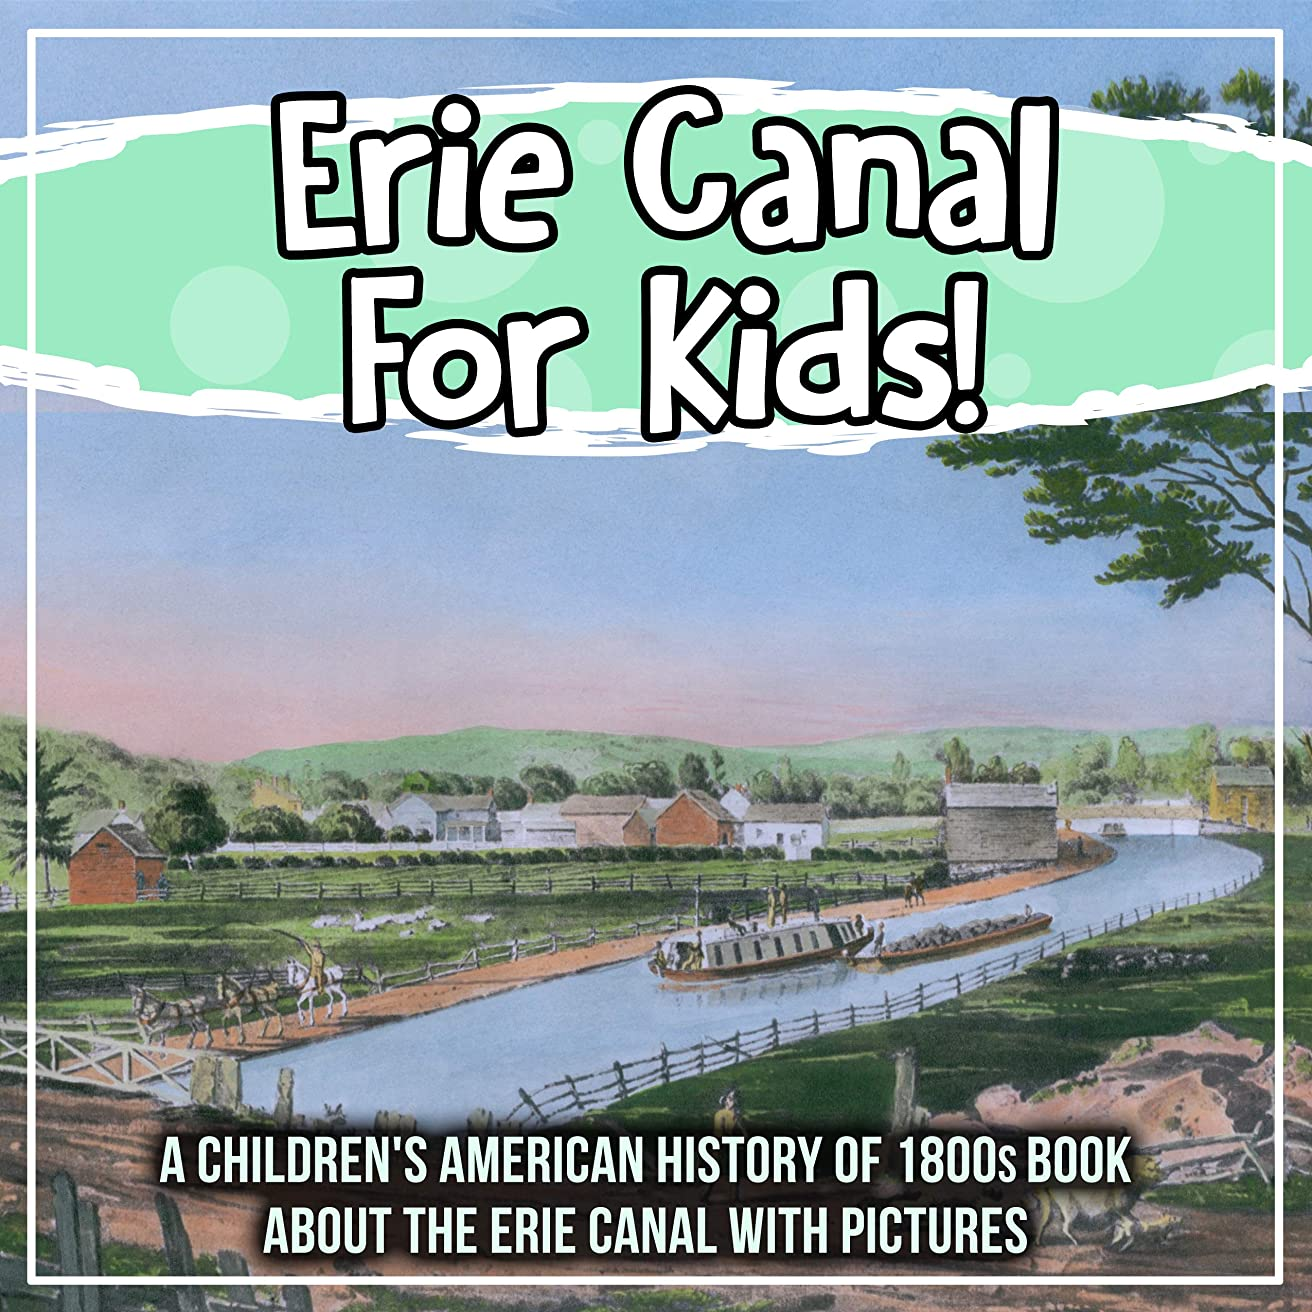 Erie Canal For Kids! A Children's American History of 1800s Book About The Erie Canal With Pictures (English Edition)